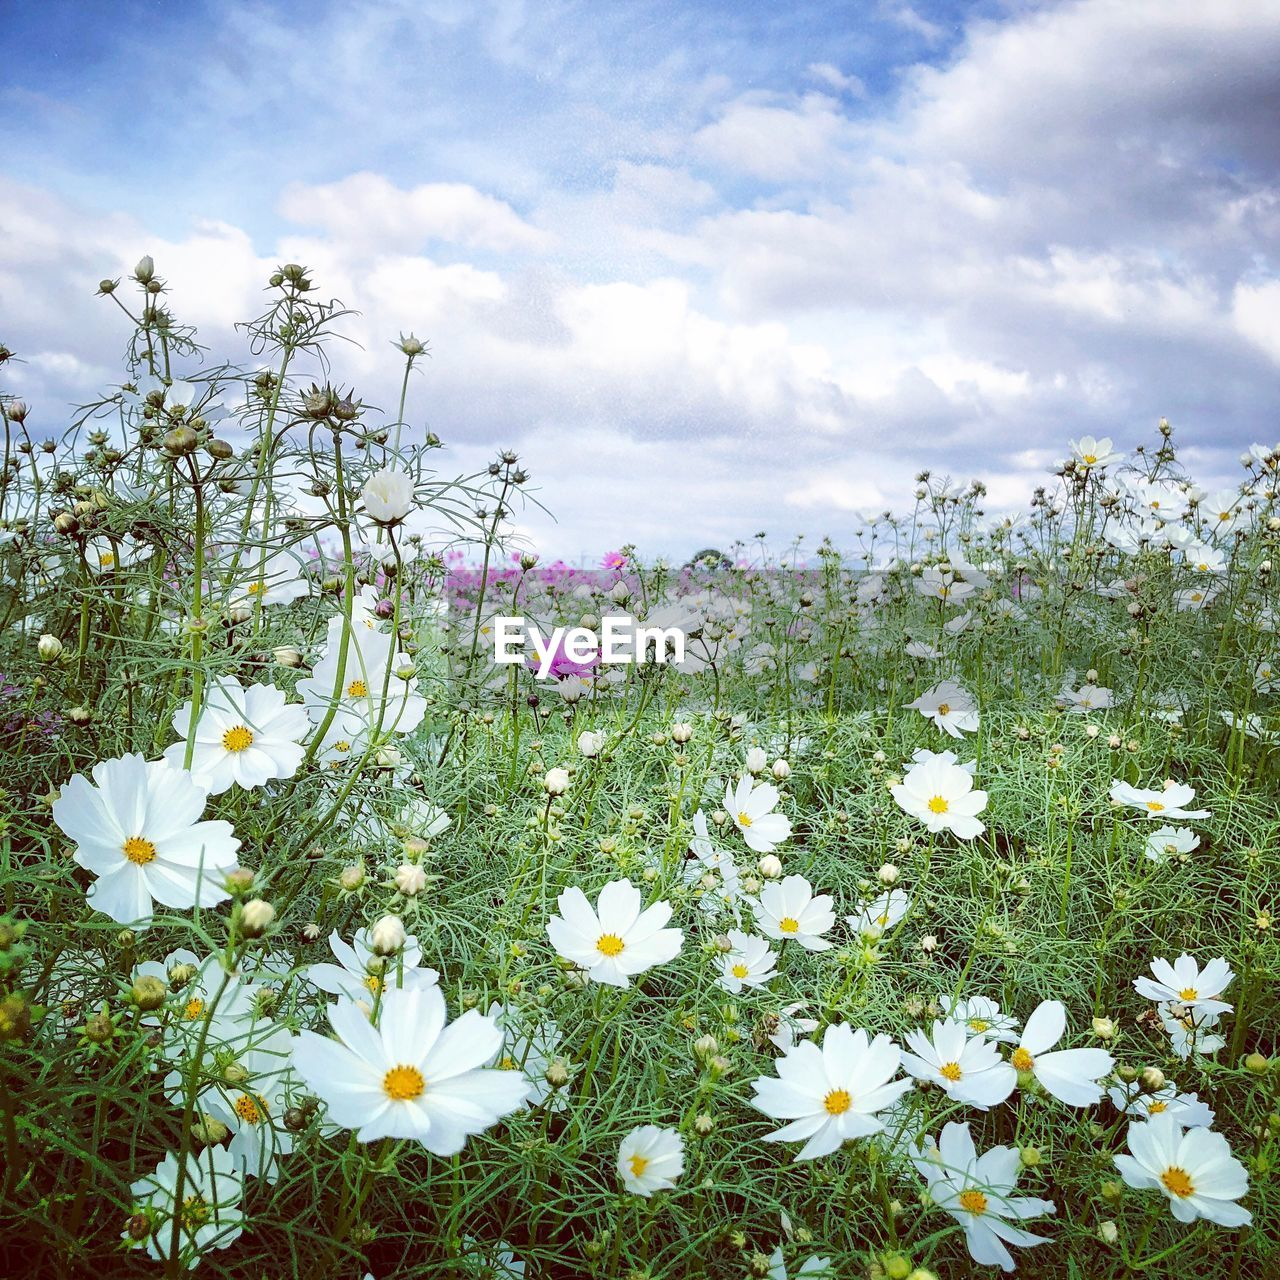 flowering plant, flower, beauty in nature, freshness, plant, fragility, cloud - sky, vulnerability, sky, growth, petal, white color, land, field, nature, close-up, flower head, inflorescence, day, no people, outdoors, pollen, flowerbed